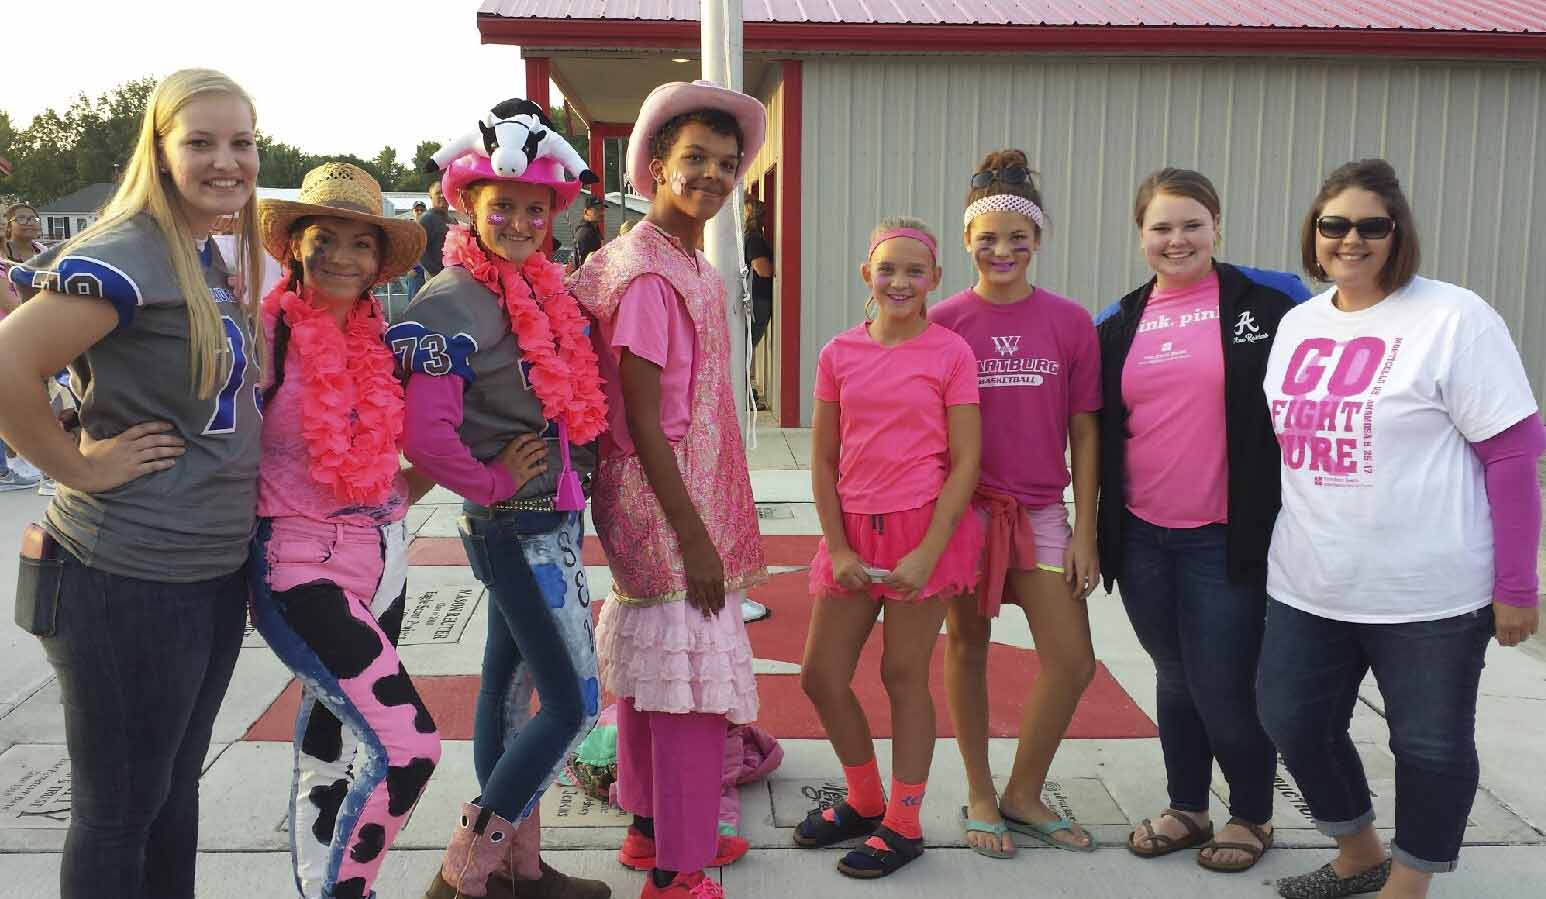 A Pinkout contest was held, sponsored by Jones Regional Medical Center, and five winners earned $10 Subway gift cards from left are Dalaney Reese (judge), Grace Sellnau and Sydney Heims of Anamosa, Autra Fasnacht, Jaelyn Aitchison and Brea Stahlberg of Monticello; and judges Kaci Ginn and Pam Martensen.